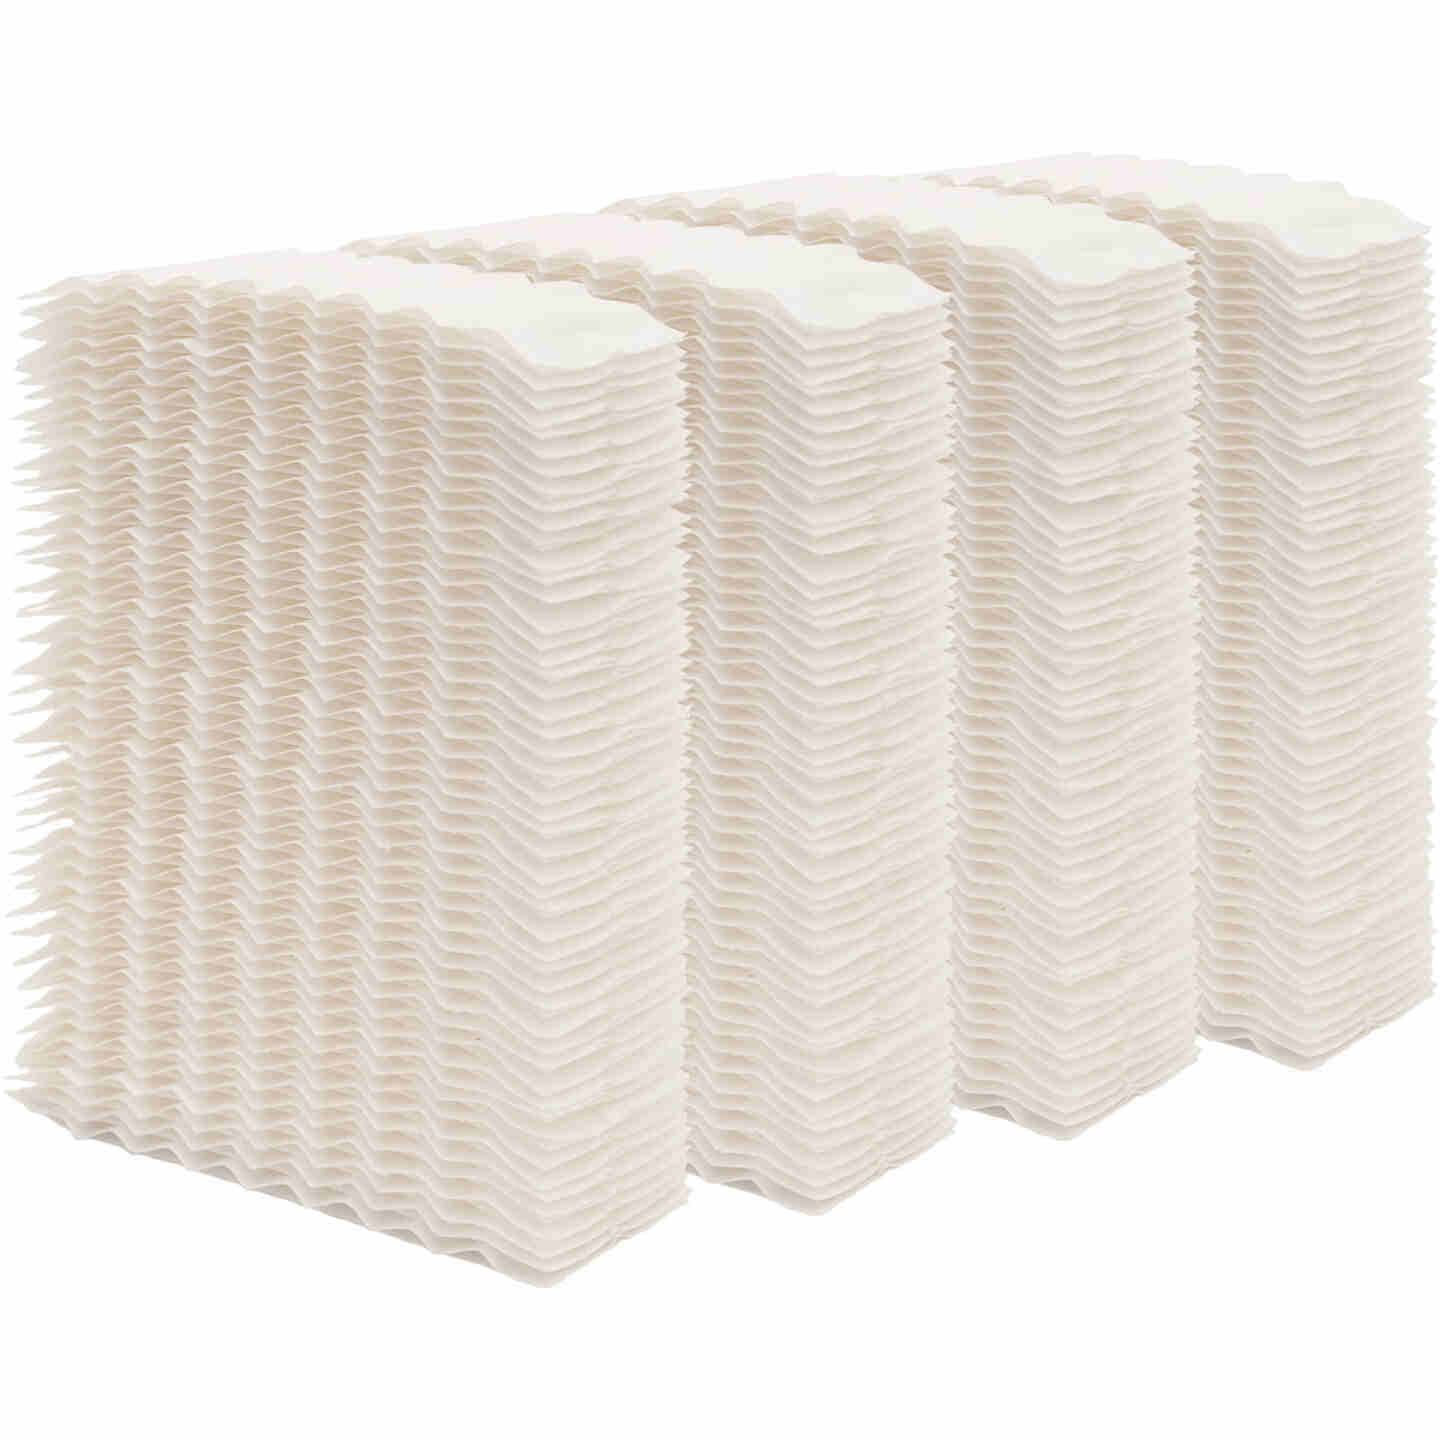 Essick Air HDC12 Humidifier Wick Filter (4-Pack) Image 2